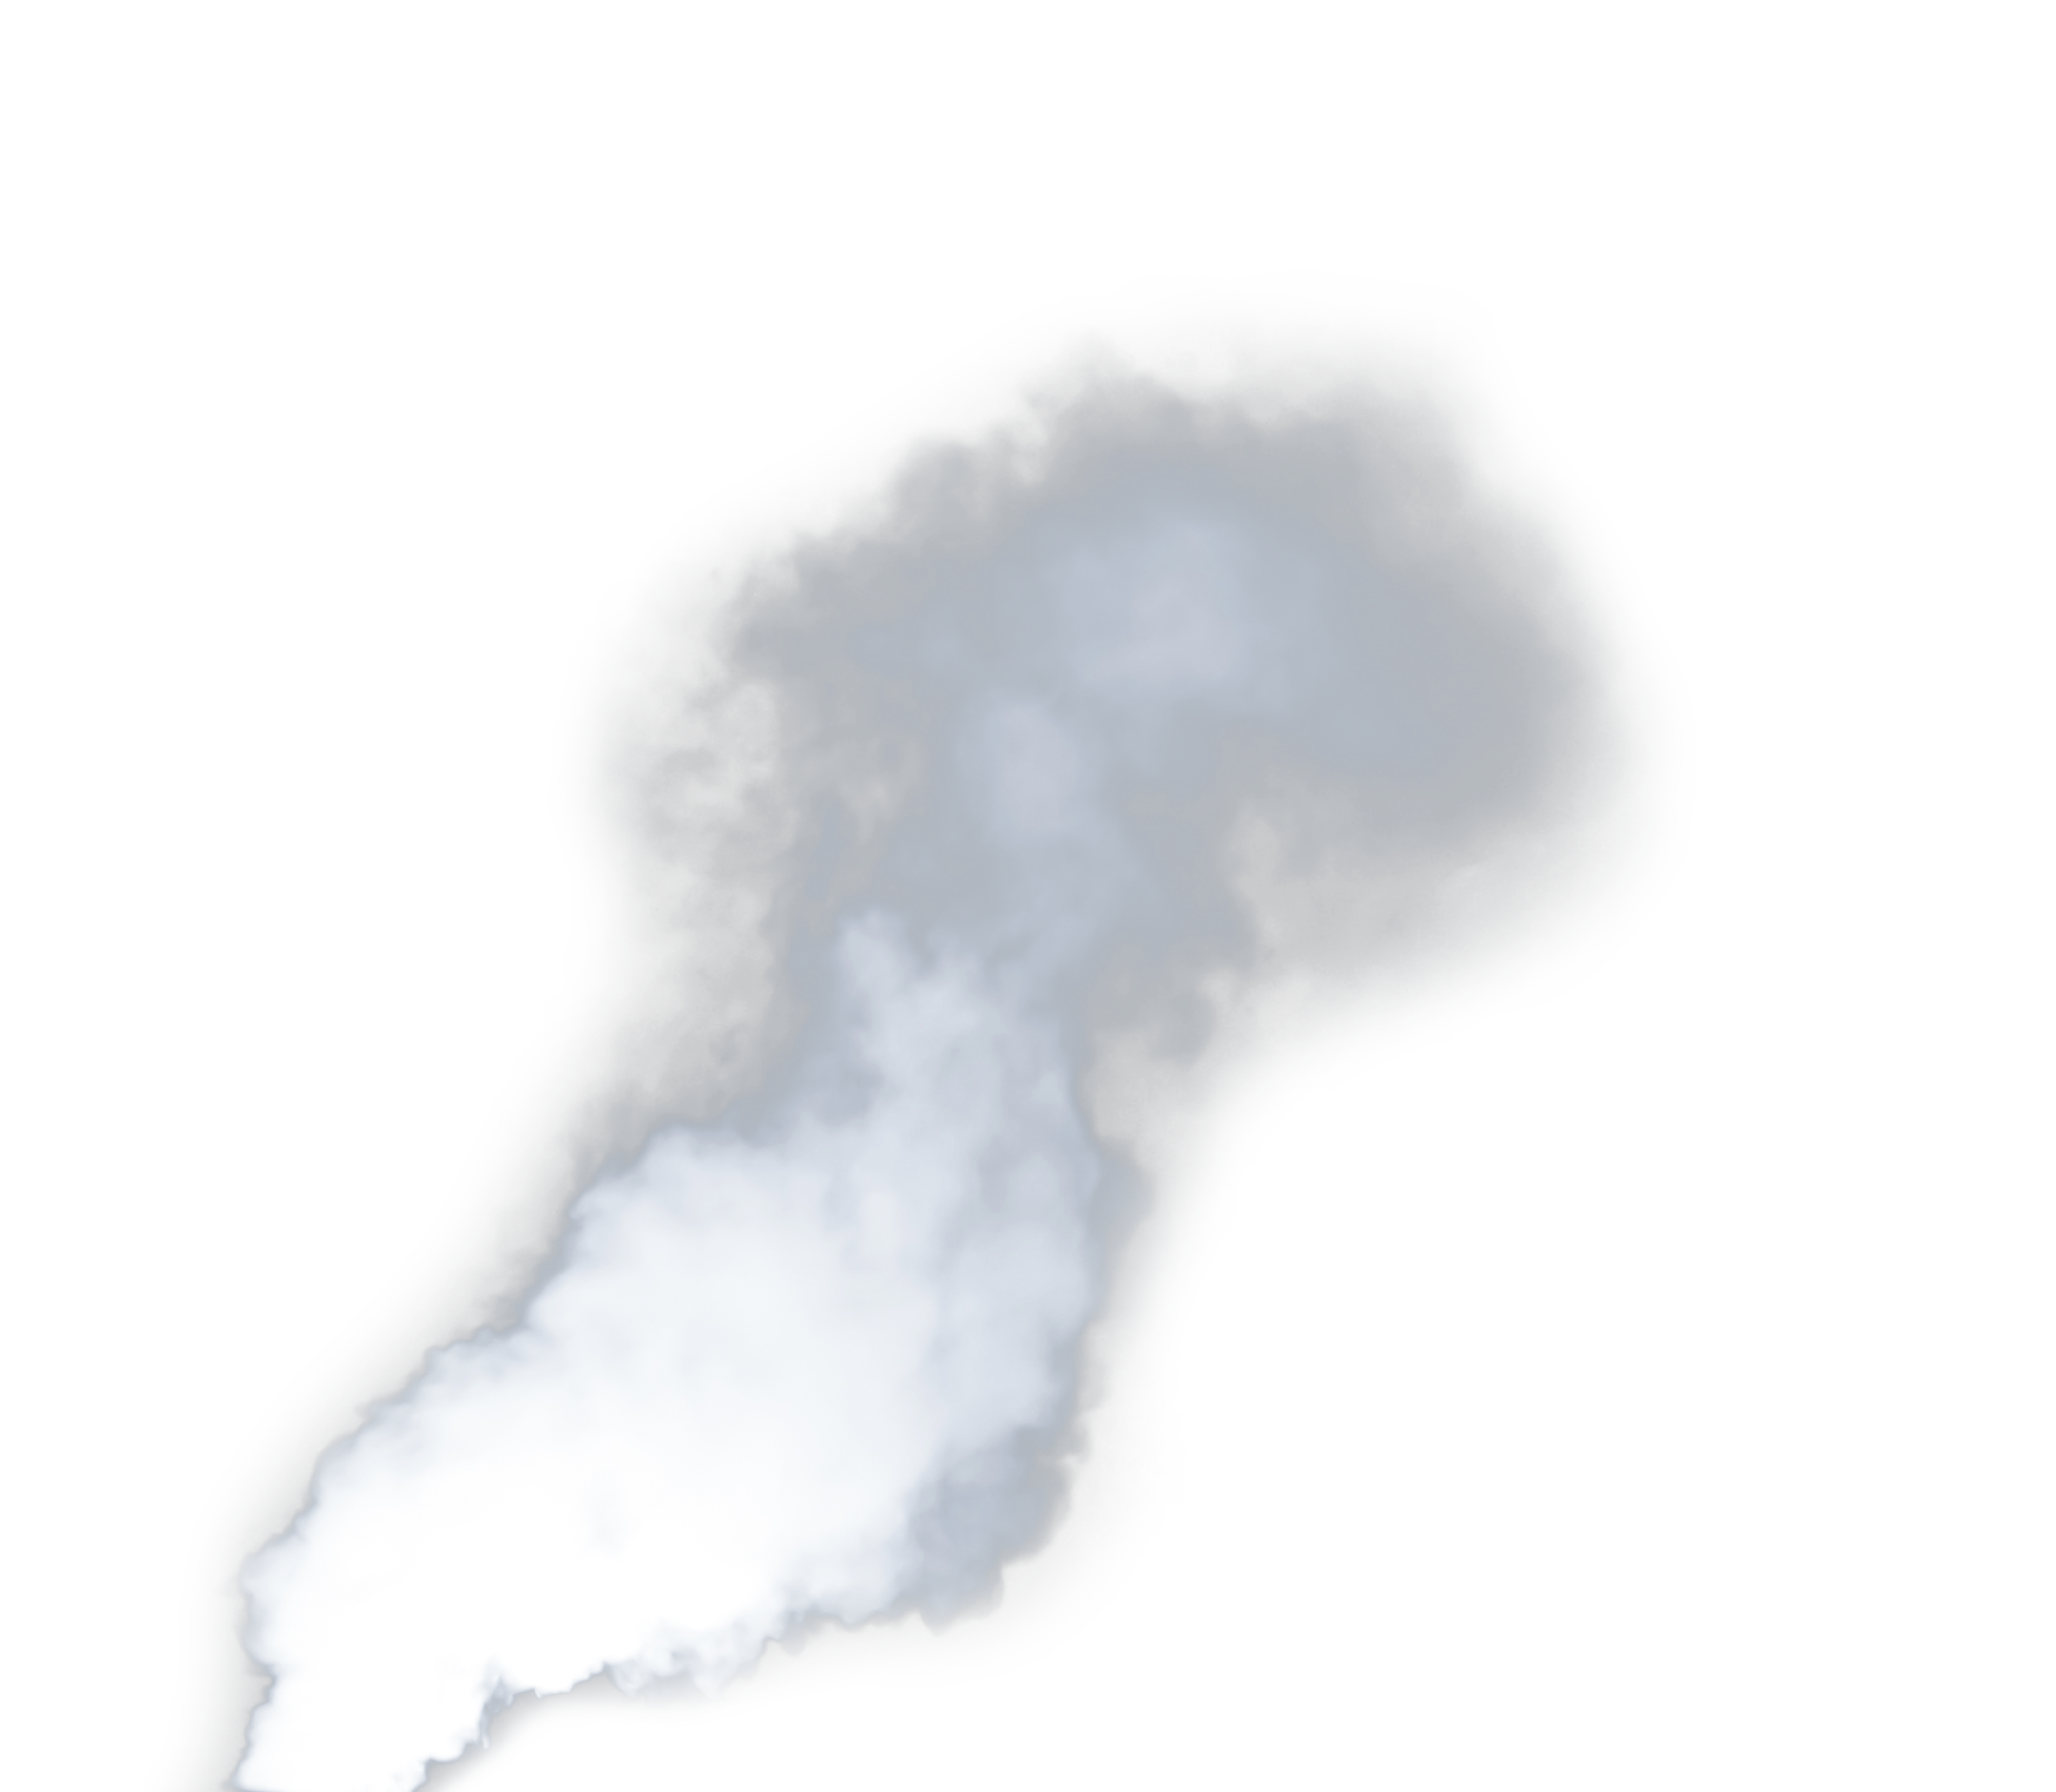 Black humo png. White angle pattern smoke